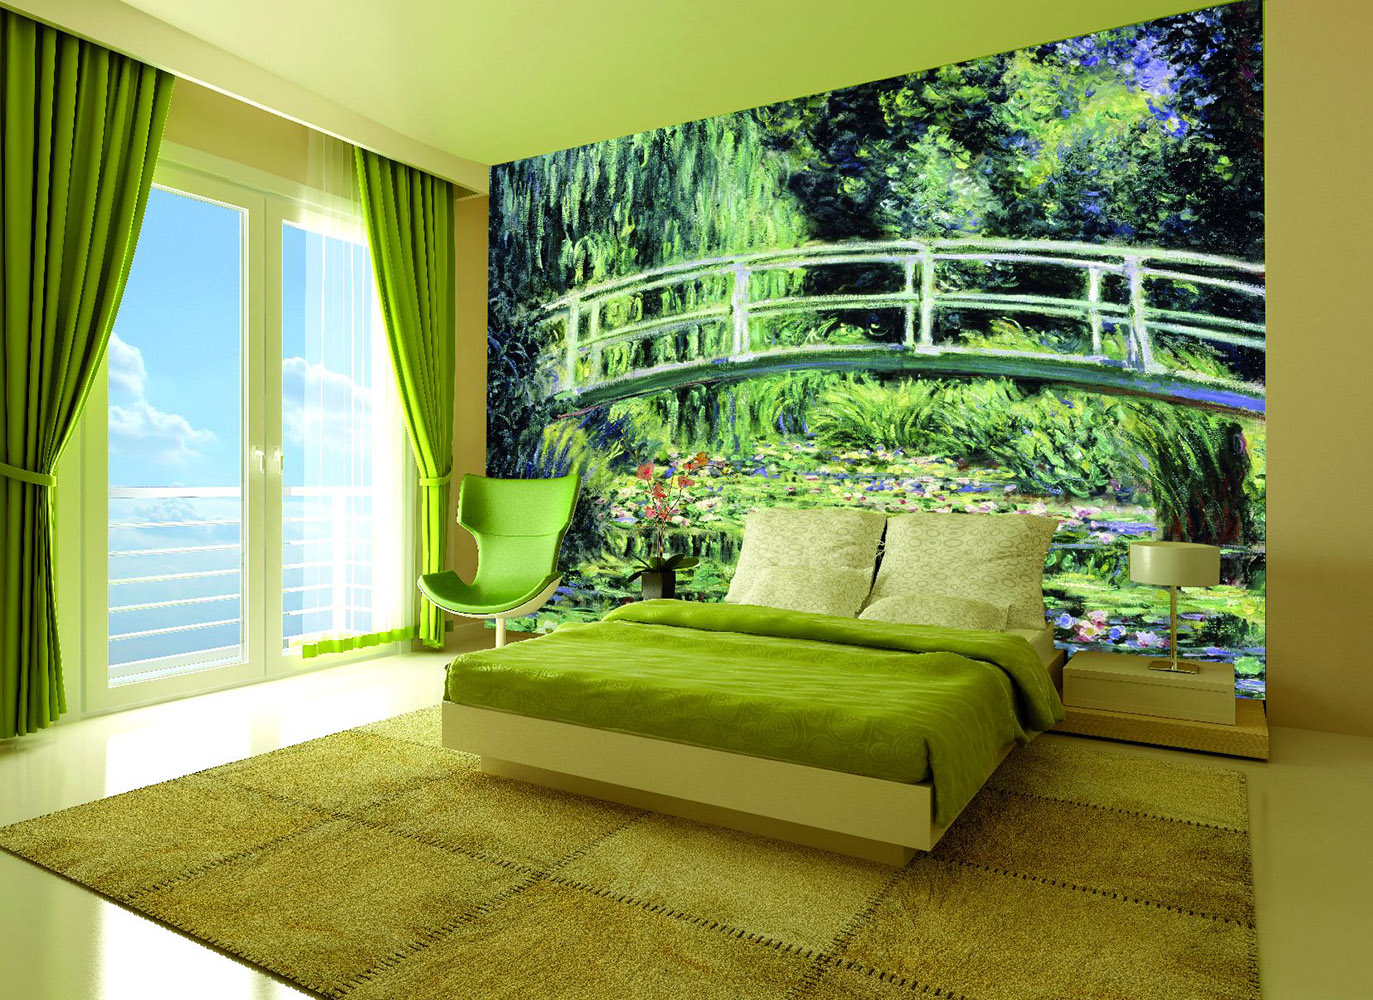 Details about Jumbo Extra Large Wall Mural Wallpaper - Nature Patterns